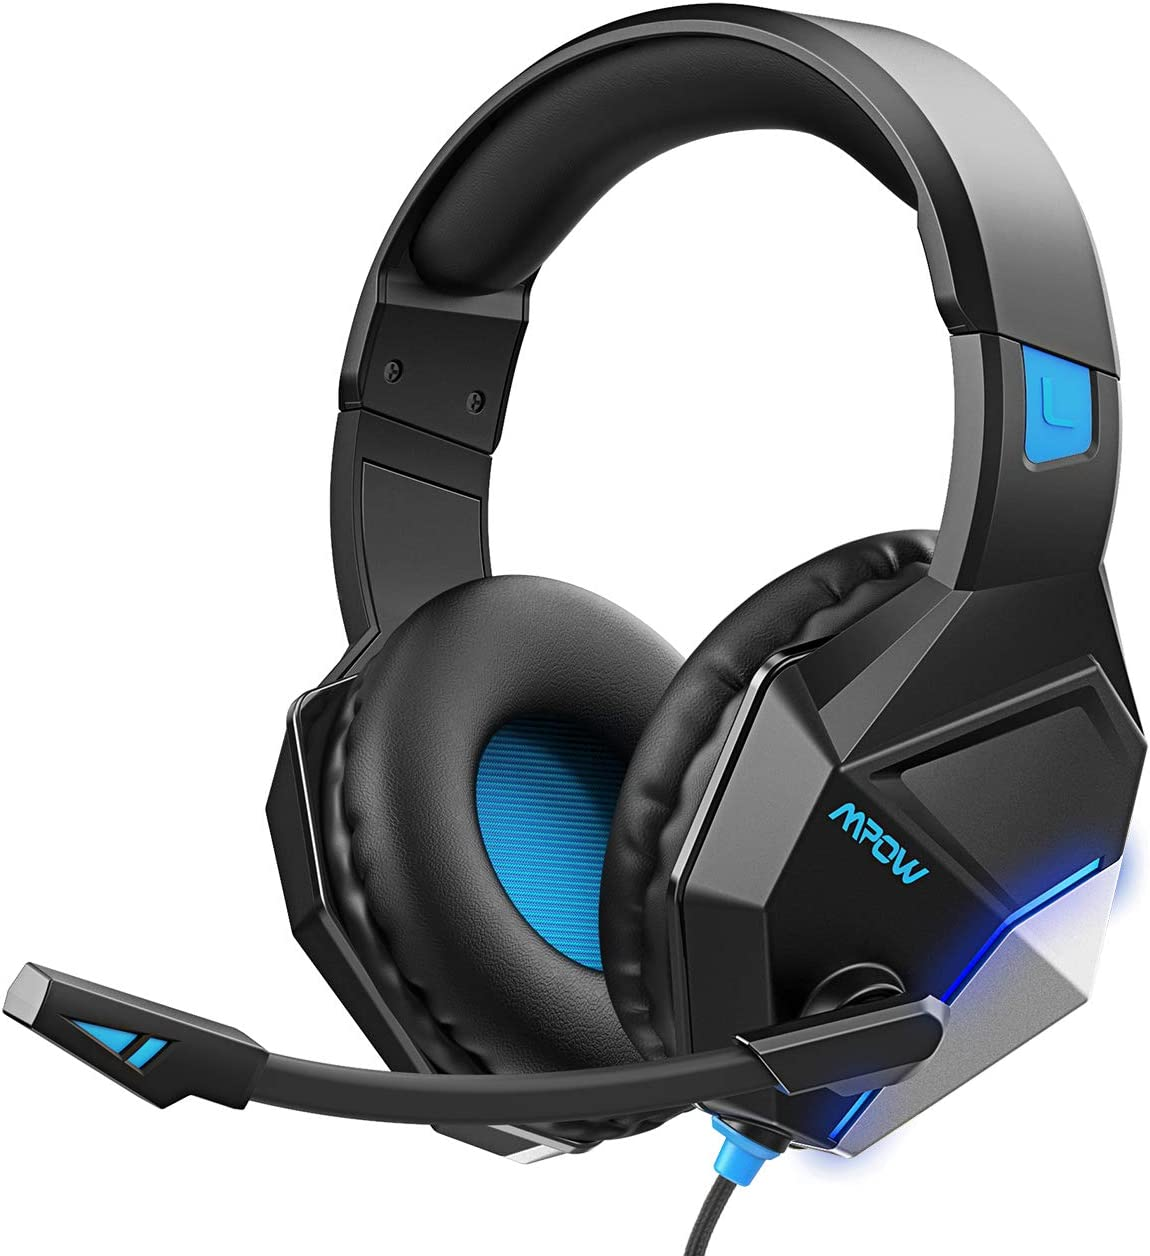 Mpow EG10 Gaming Headset for PS4, PC, Xbox One 254G Lightweight Edition , Wired Gaming Headphones with 3D Surround Sound, Noise Cancelling Mic, 50mm Drivers, Soft material Computer Headset